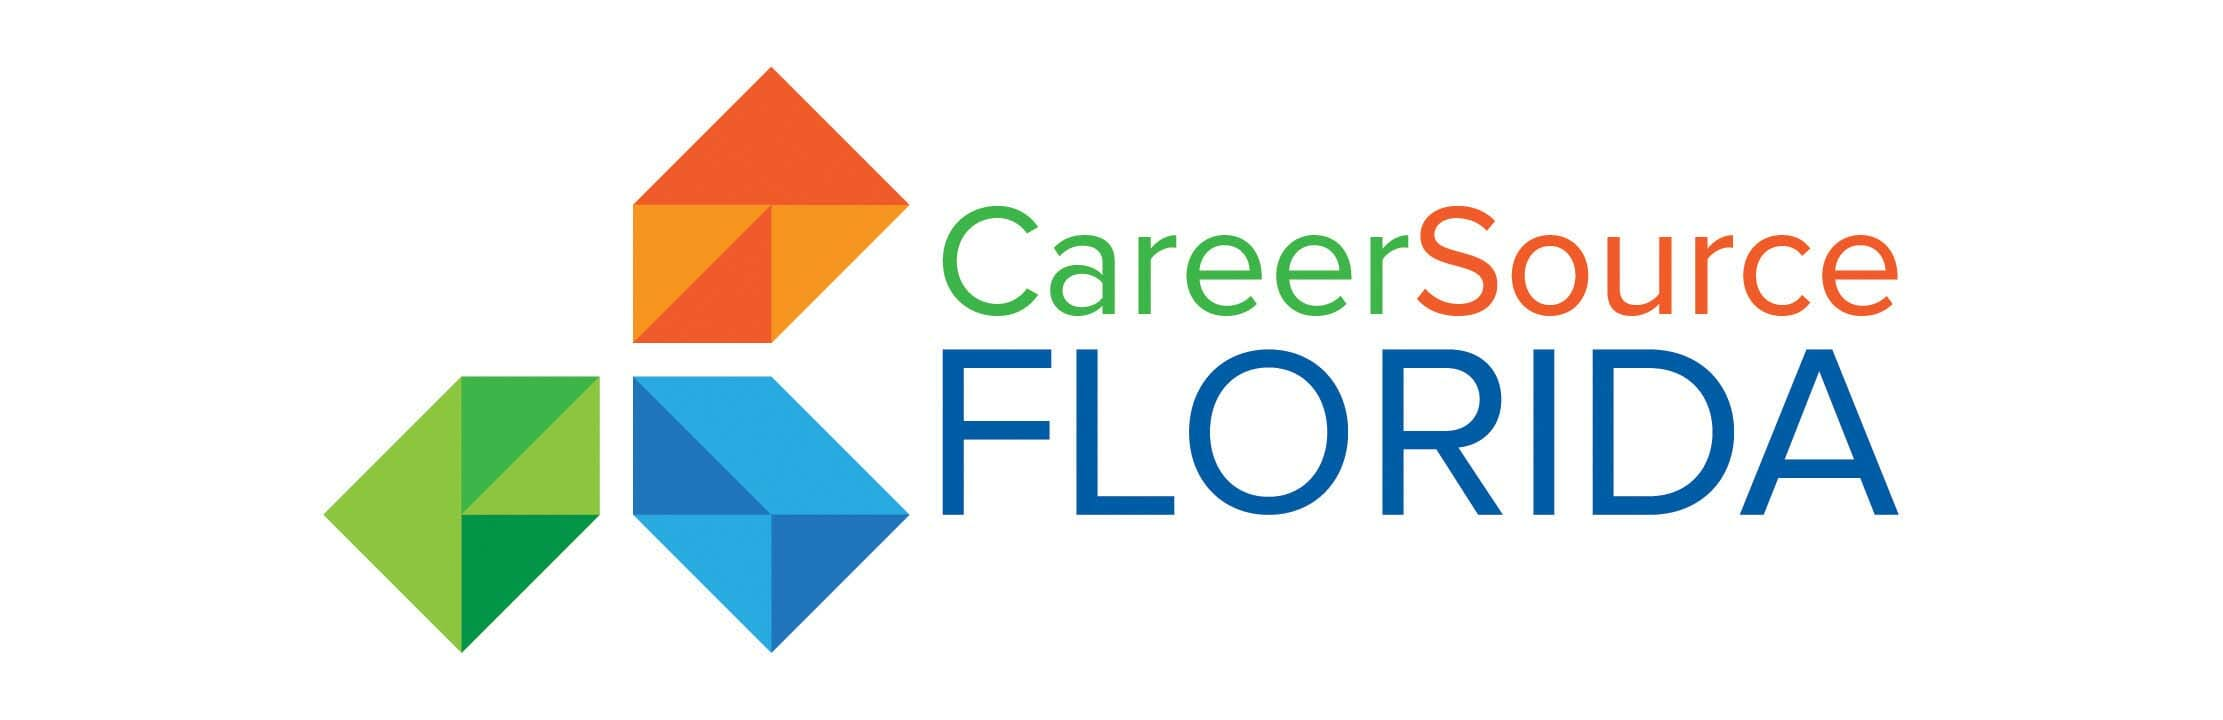 careersource-florida